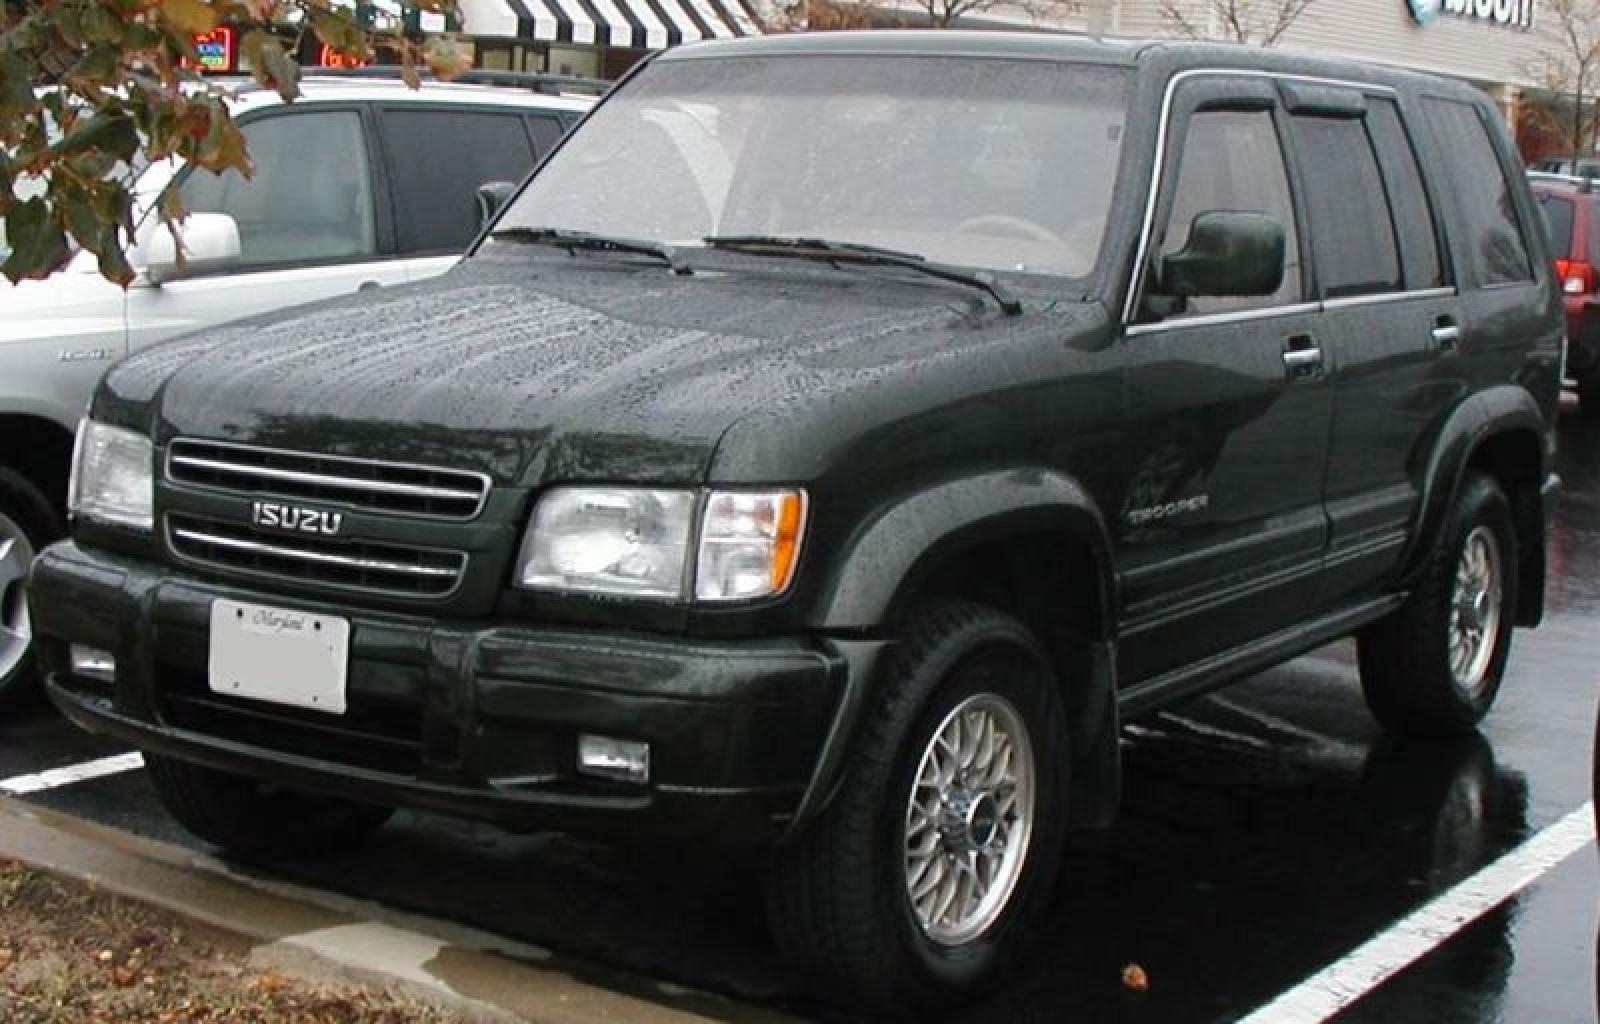 2000 isuzu trooper information and photos zombiedrive. Black Bedroom Furniture Sets. Home Design Ideas